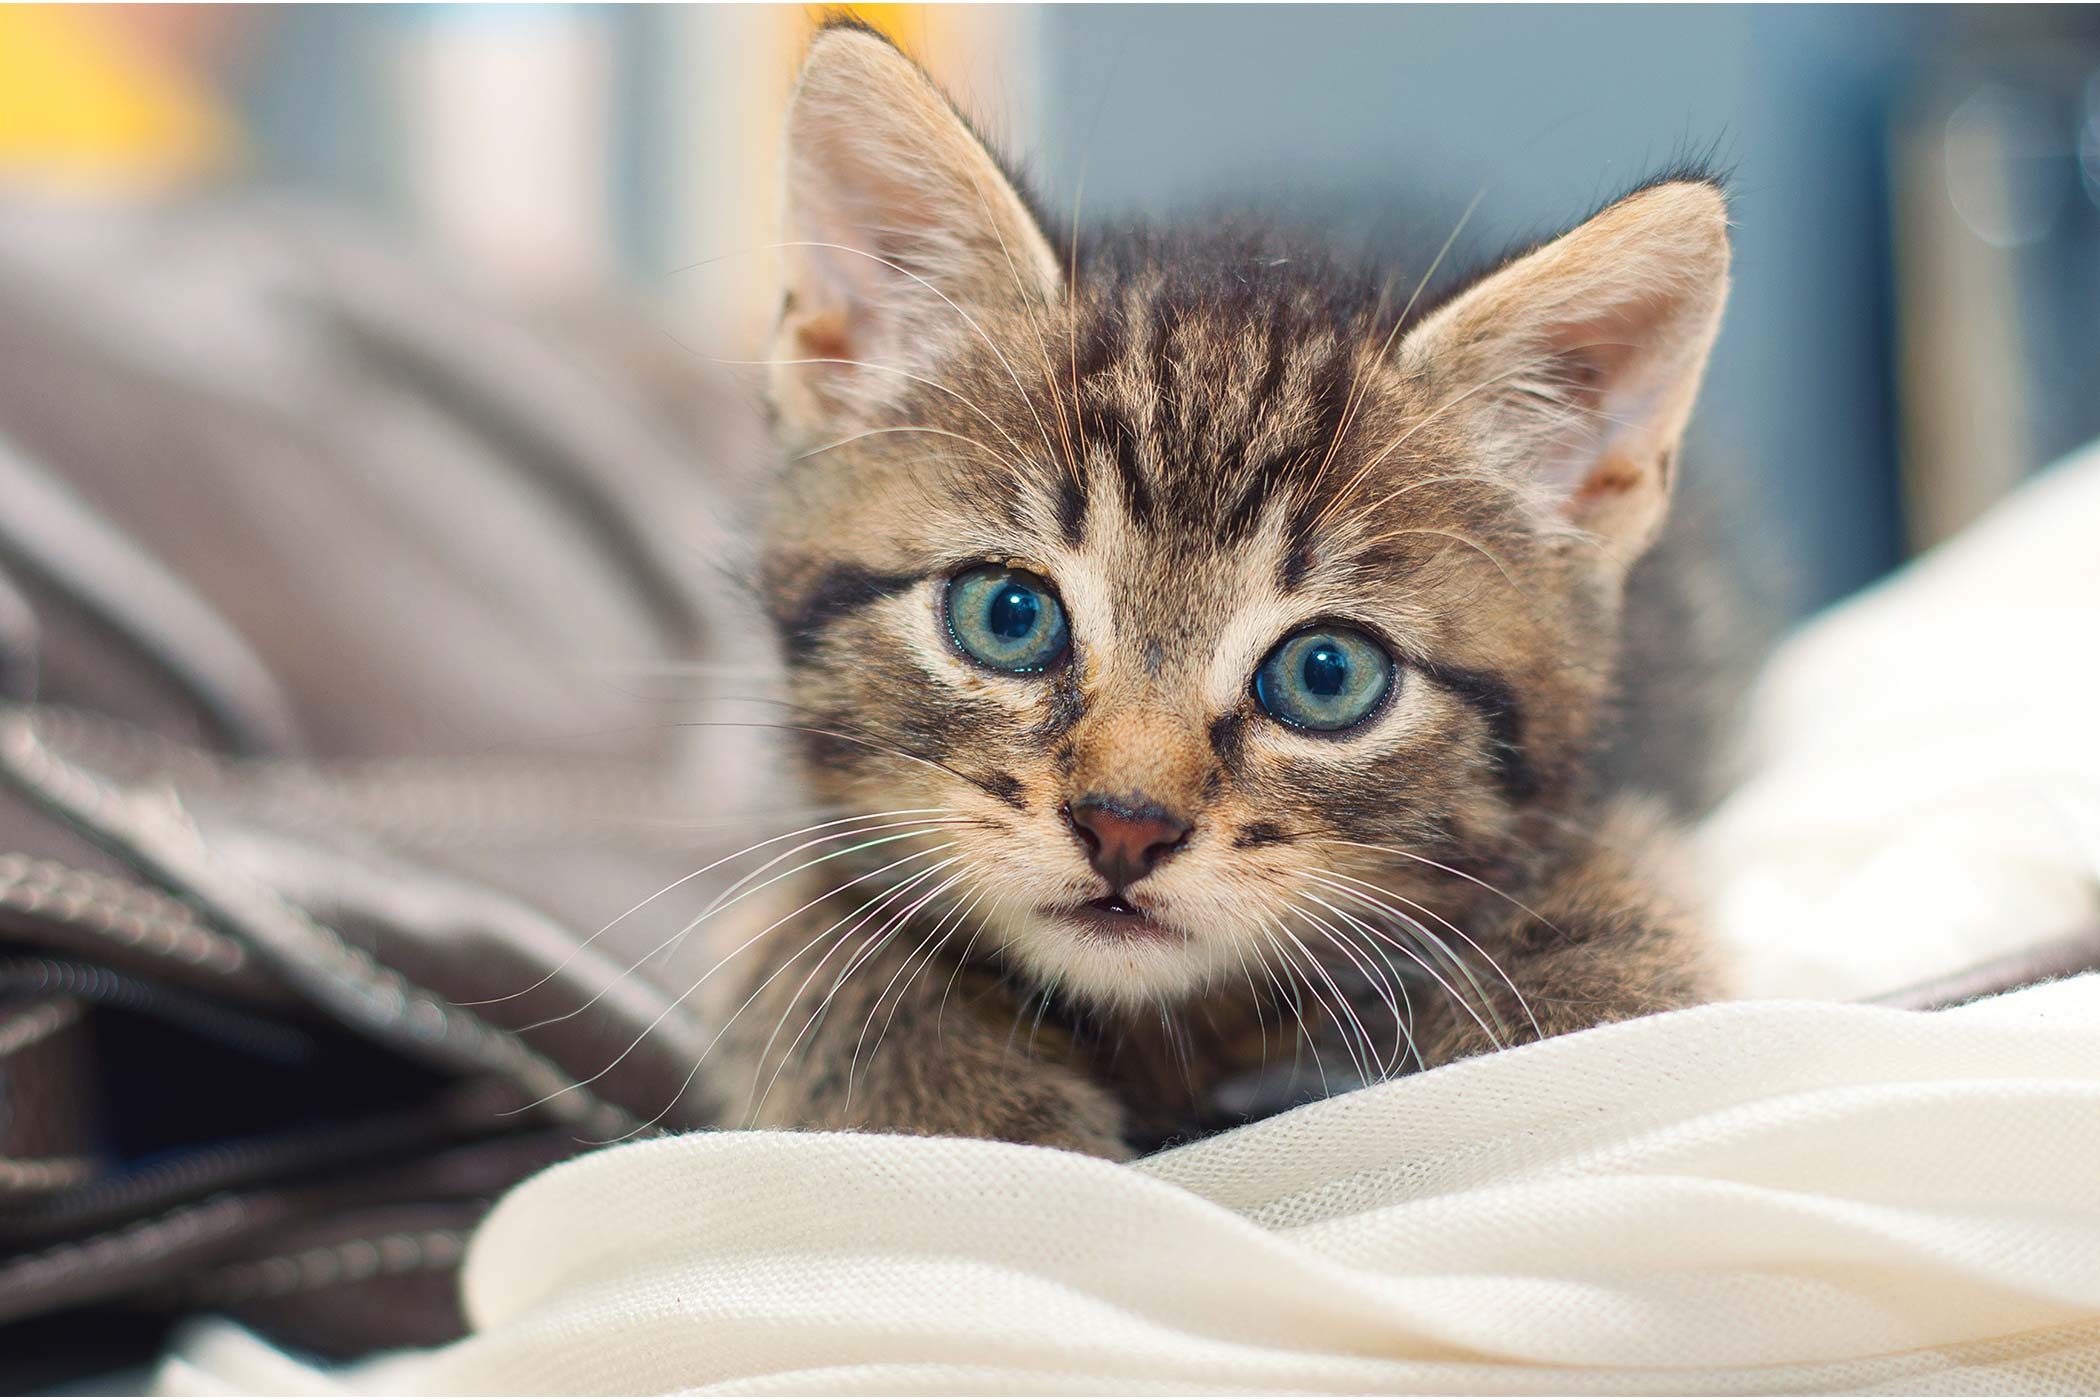 Eyelid Protrusion (Cherry Eye) in Cats